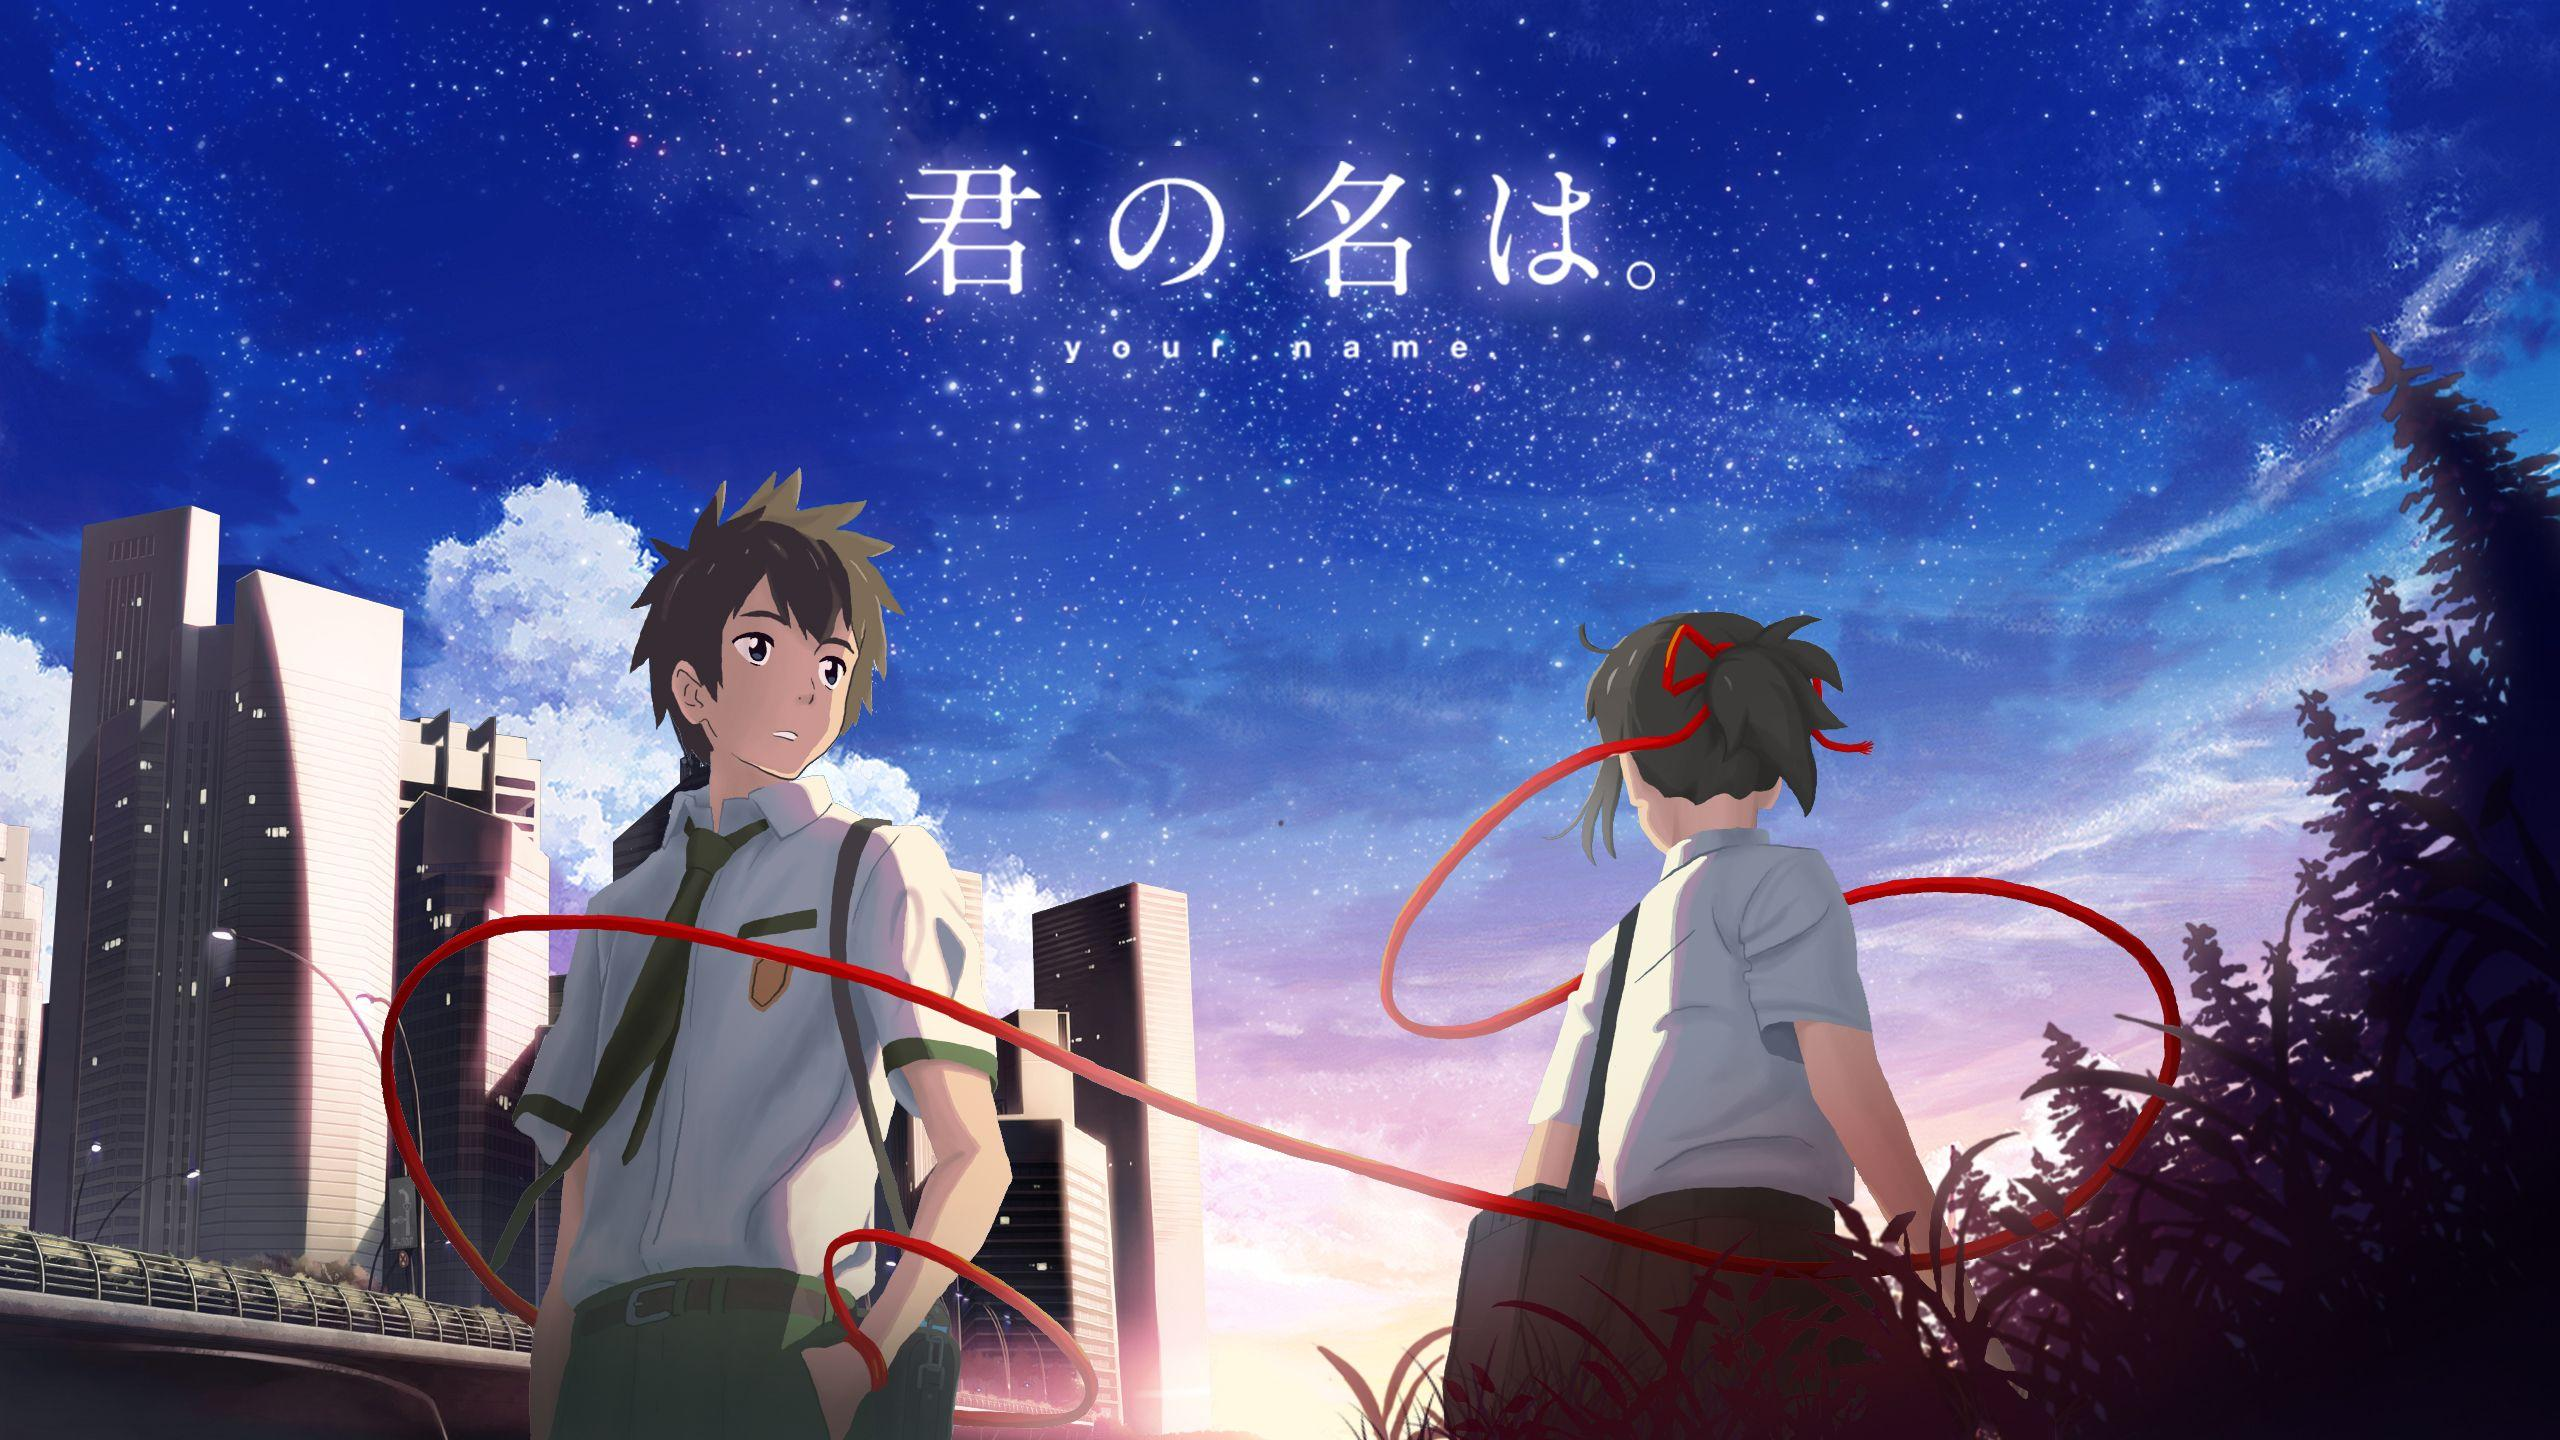 836 Your Name. HD Wallpapers